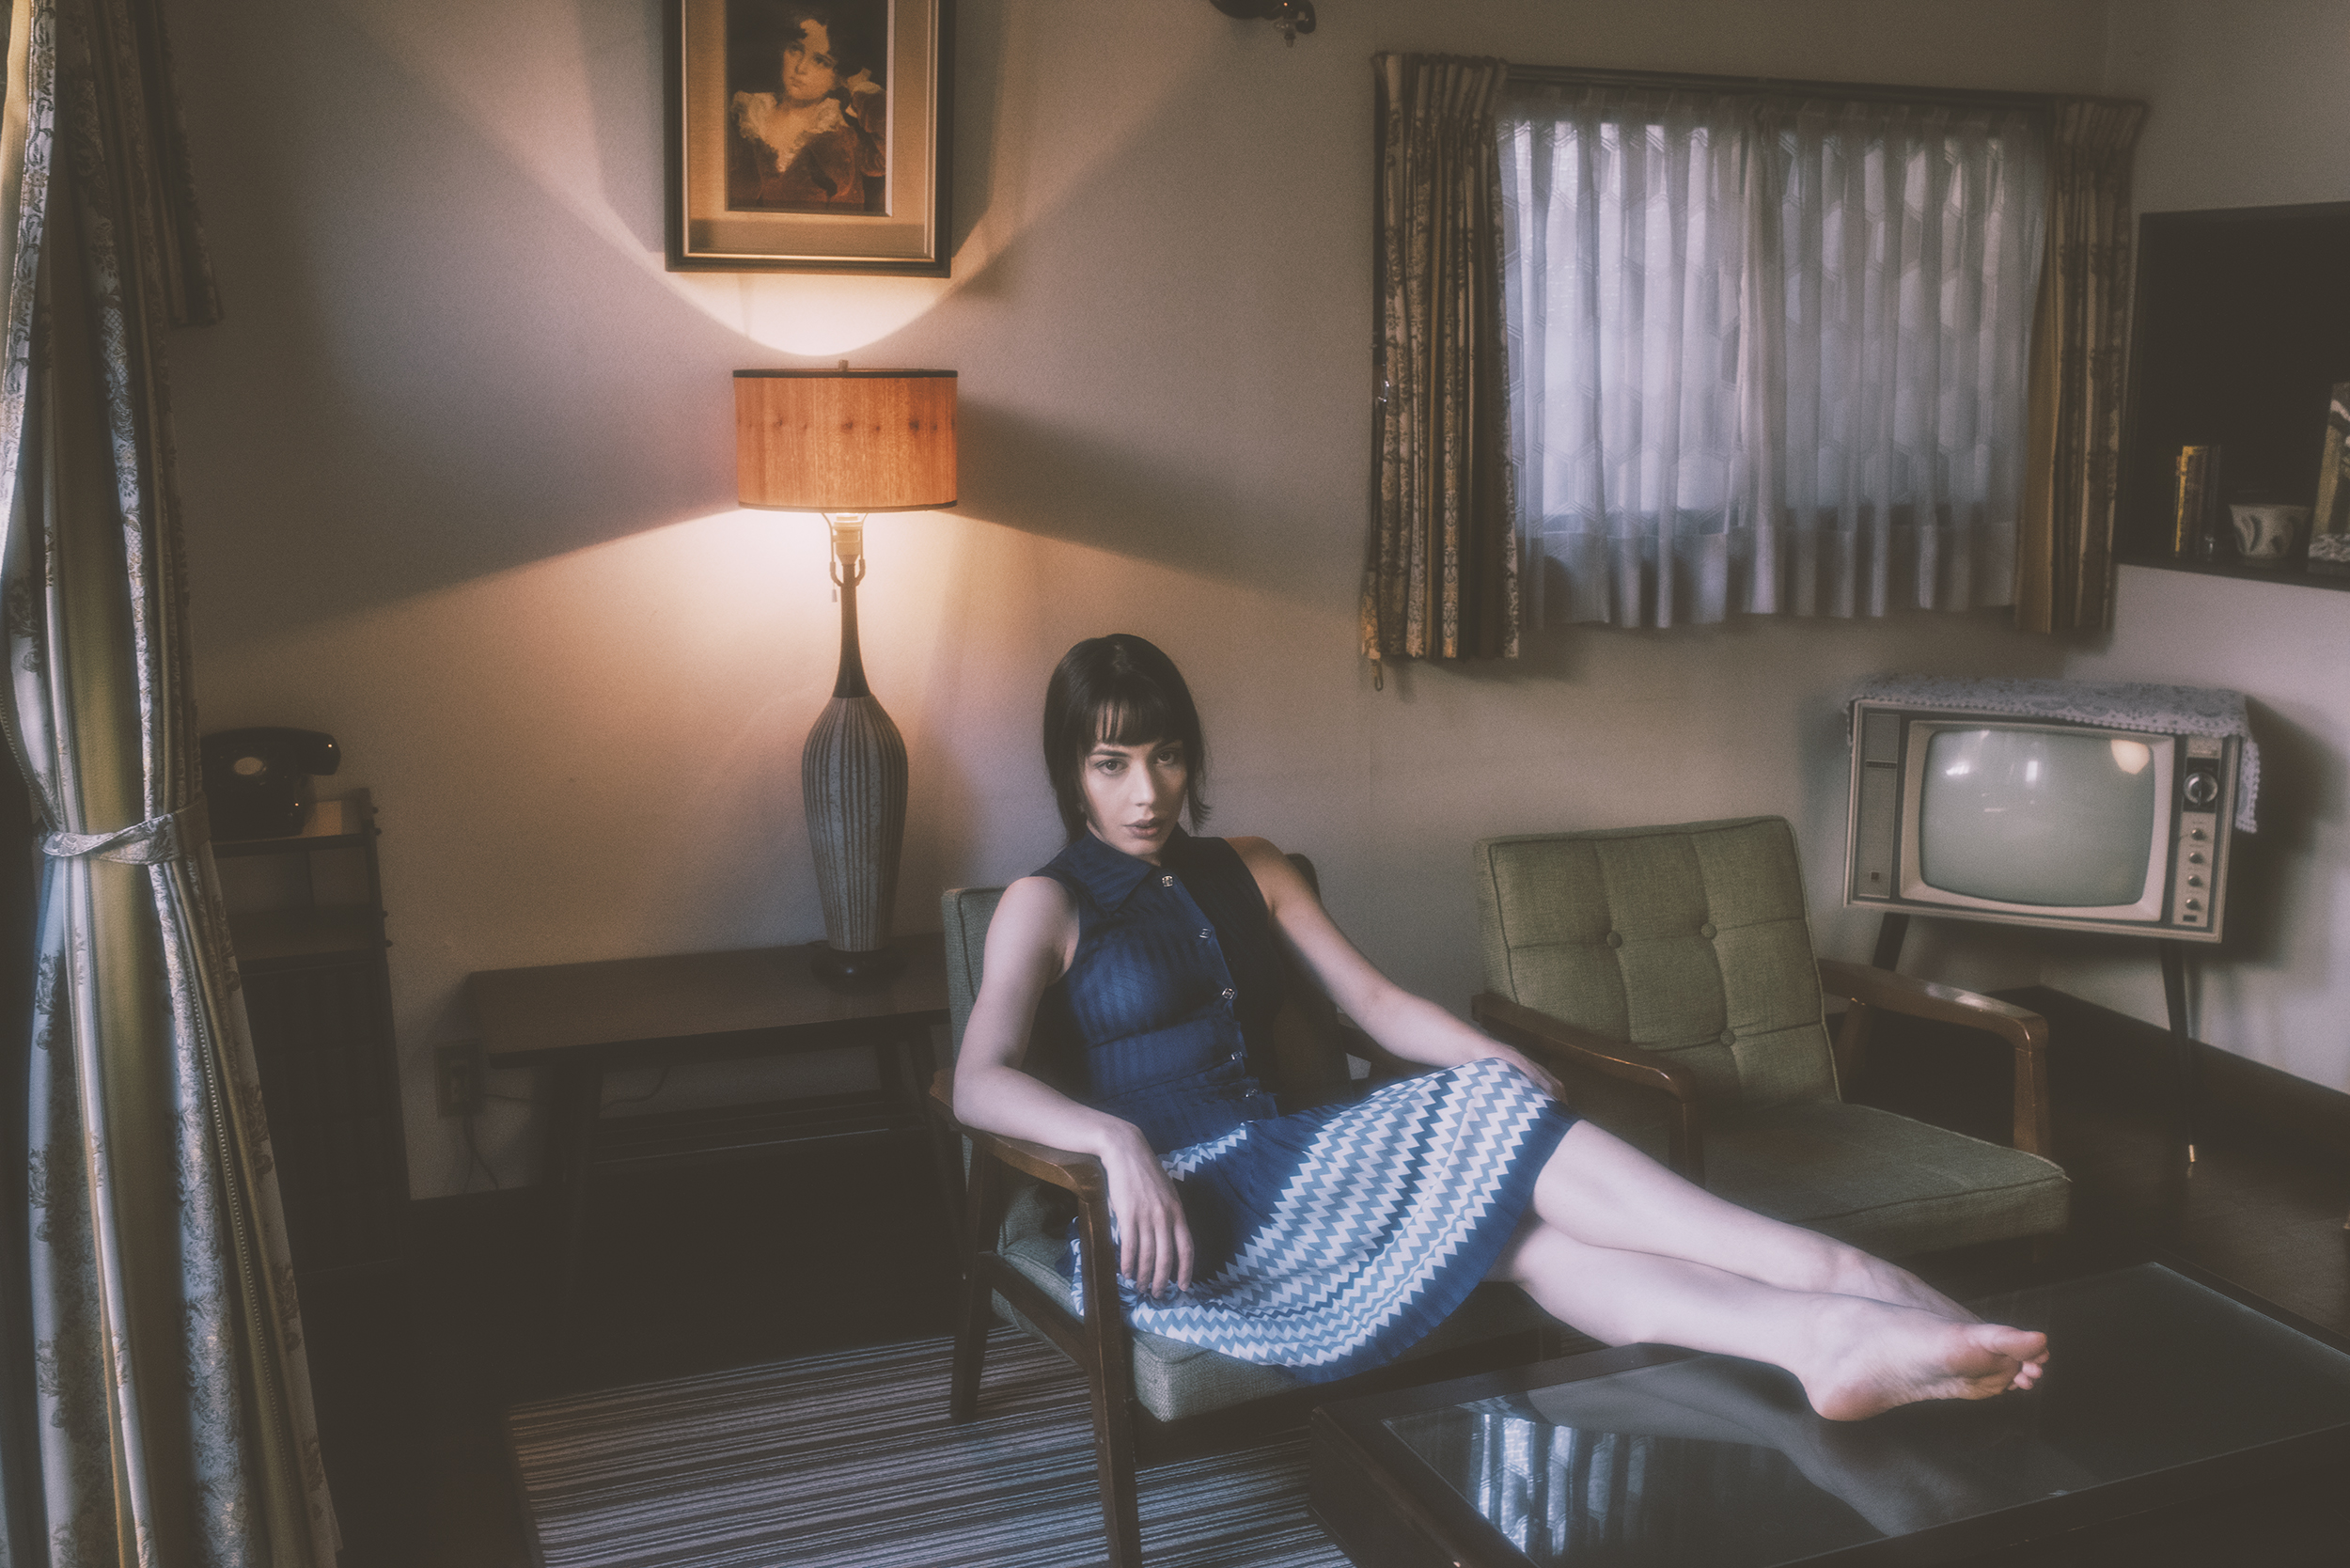 Gestalta photographed by Shuji Kobayashi. Picture of girl in blue dress in a vintage style room